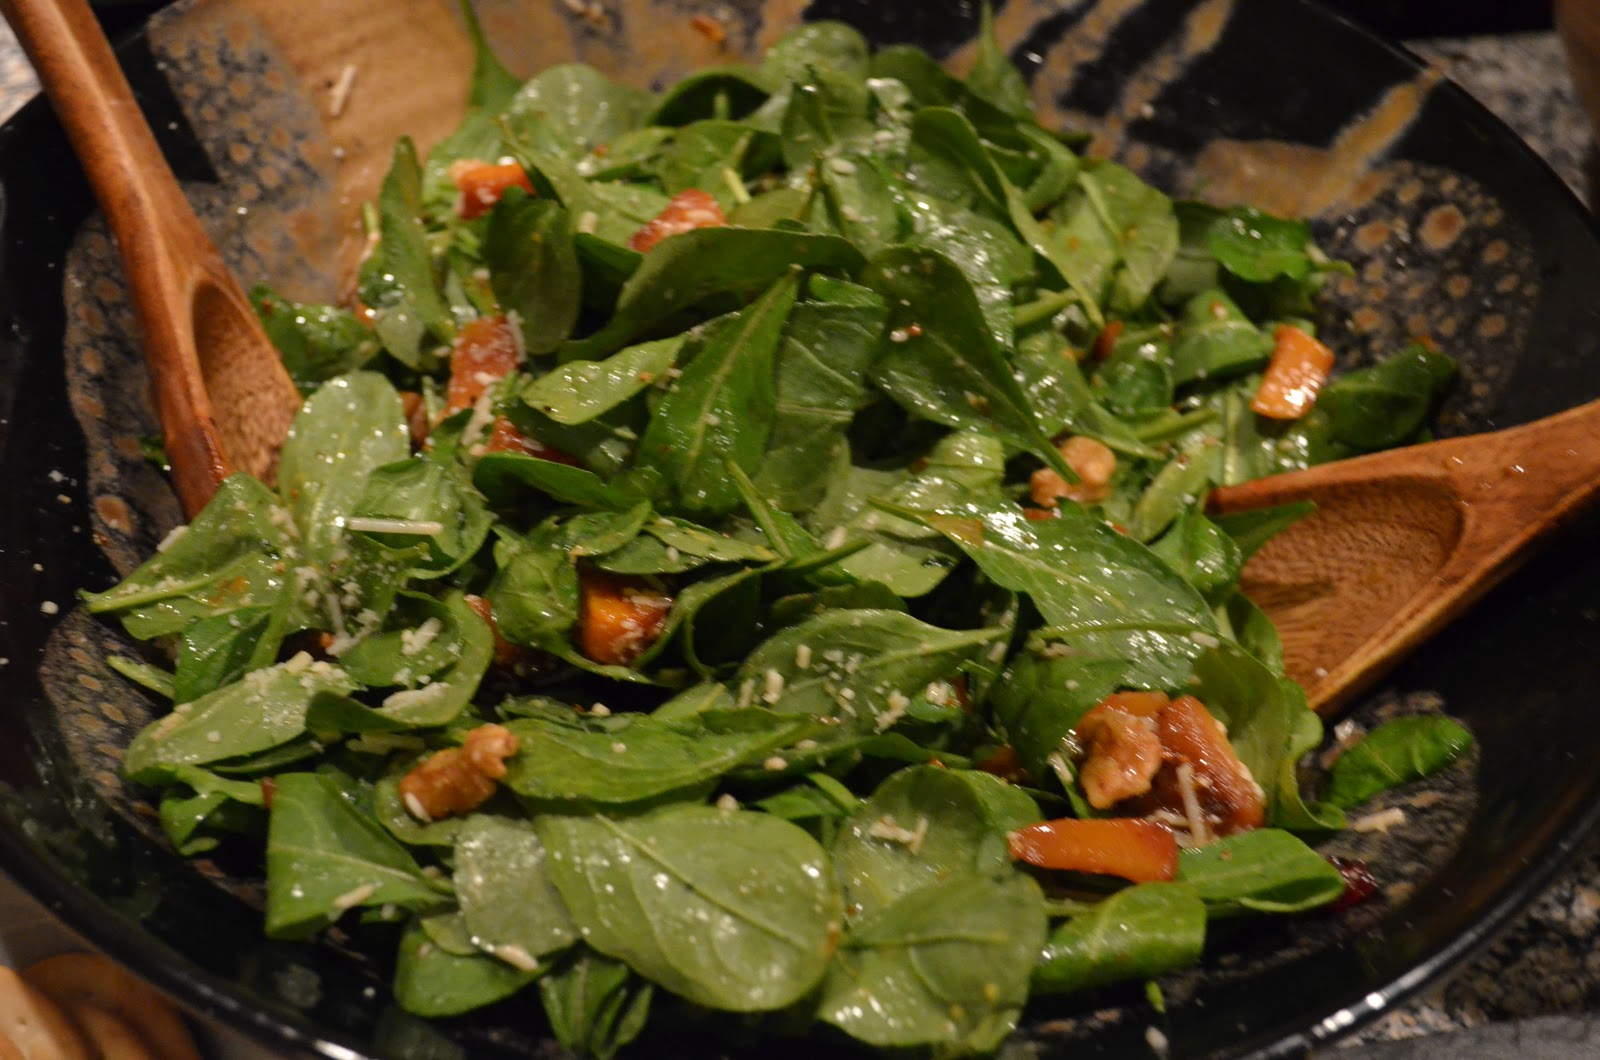 ... LA: Cook: Roasted Butternut Squash Salad with Warm Cider Vinaigrette